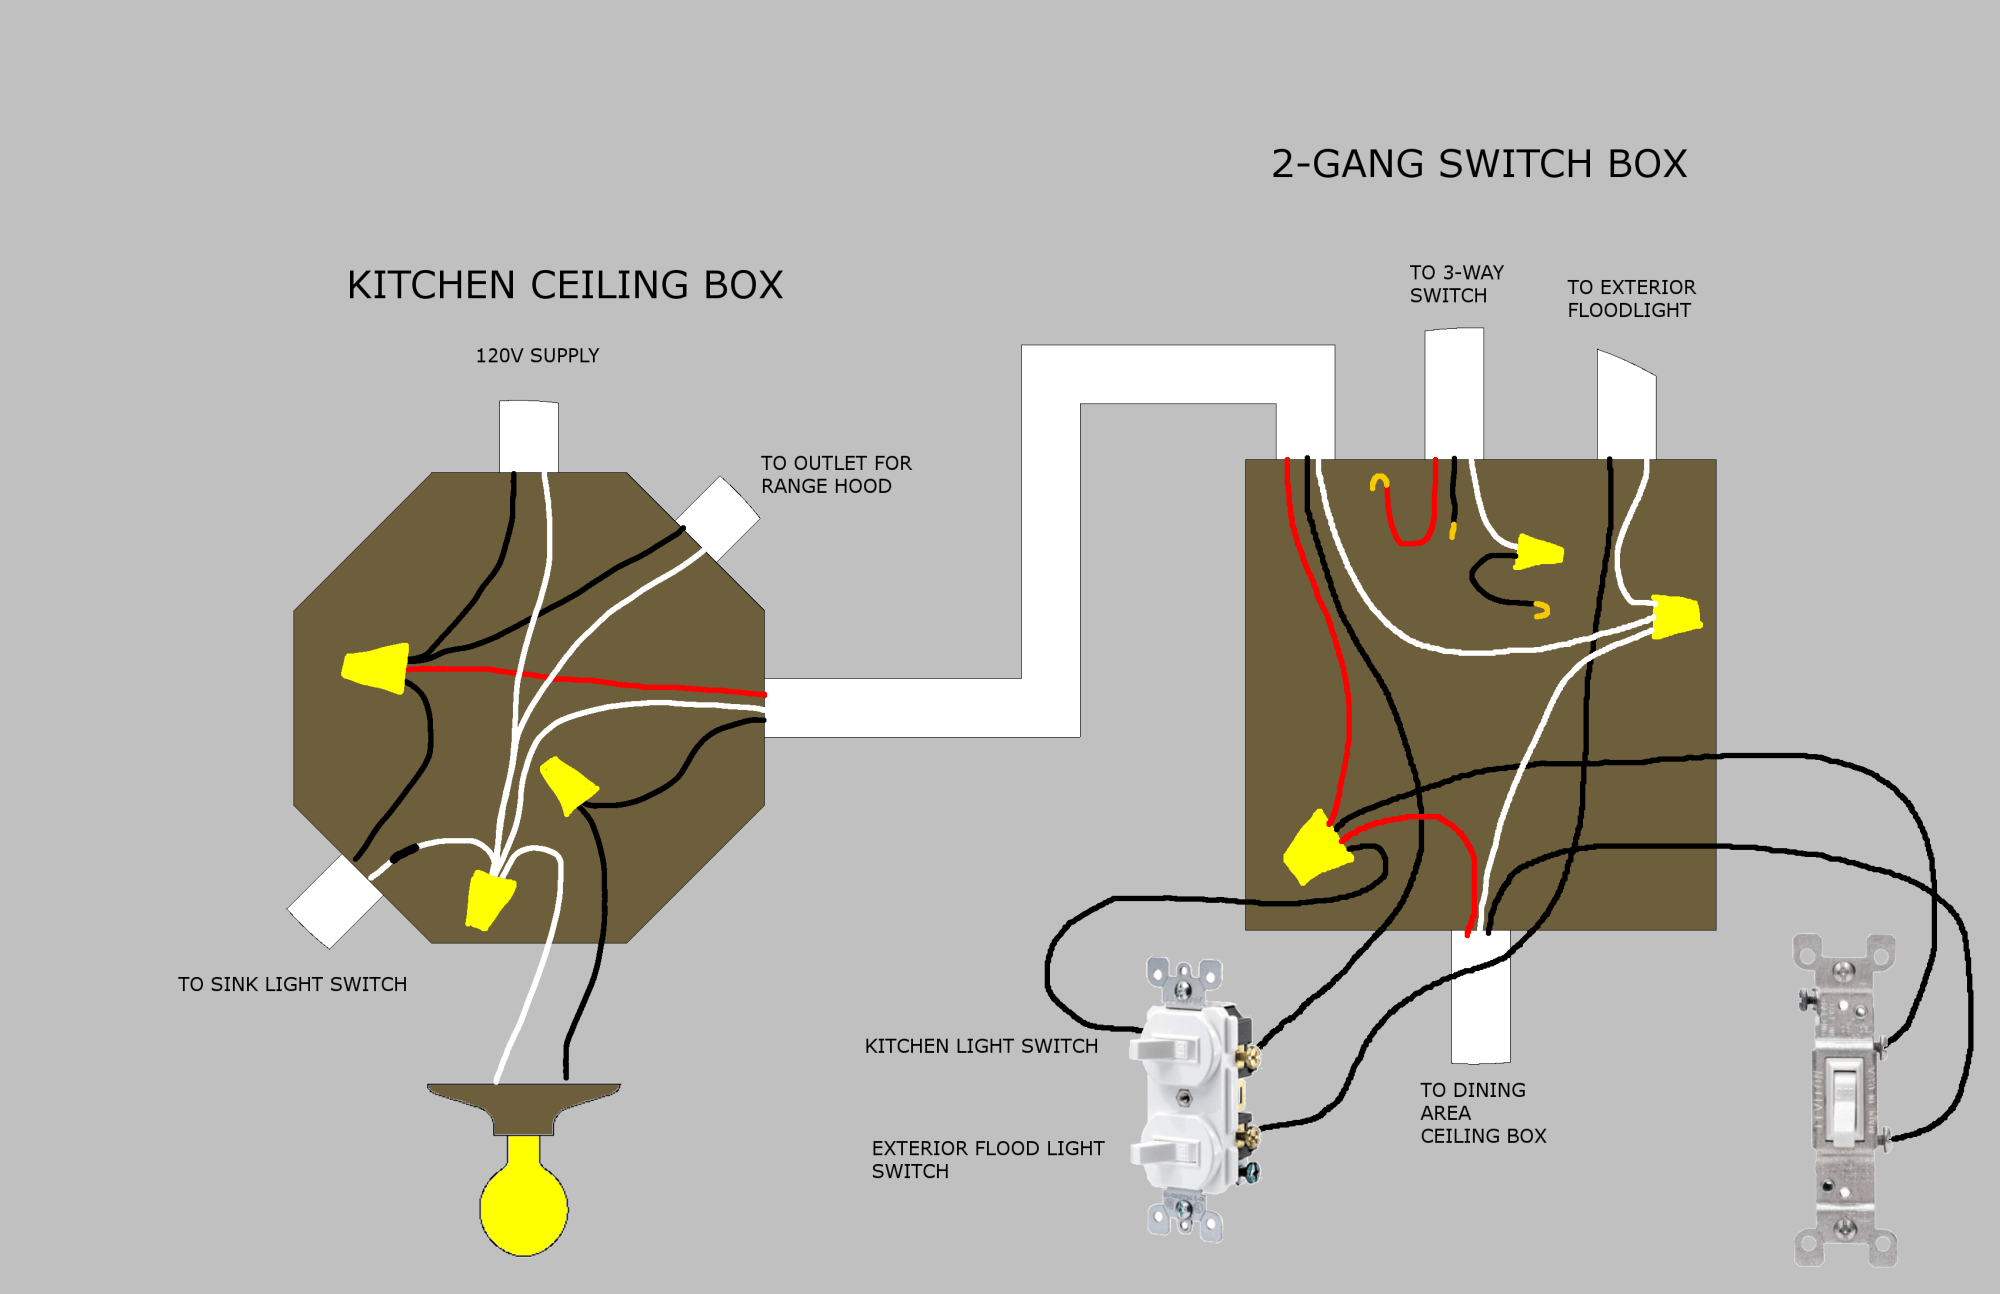 hight resolution of electrical is this ceiling box wiring correct and how can i networking wiring diagram switch box wiring diagram